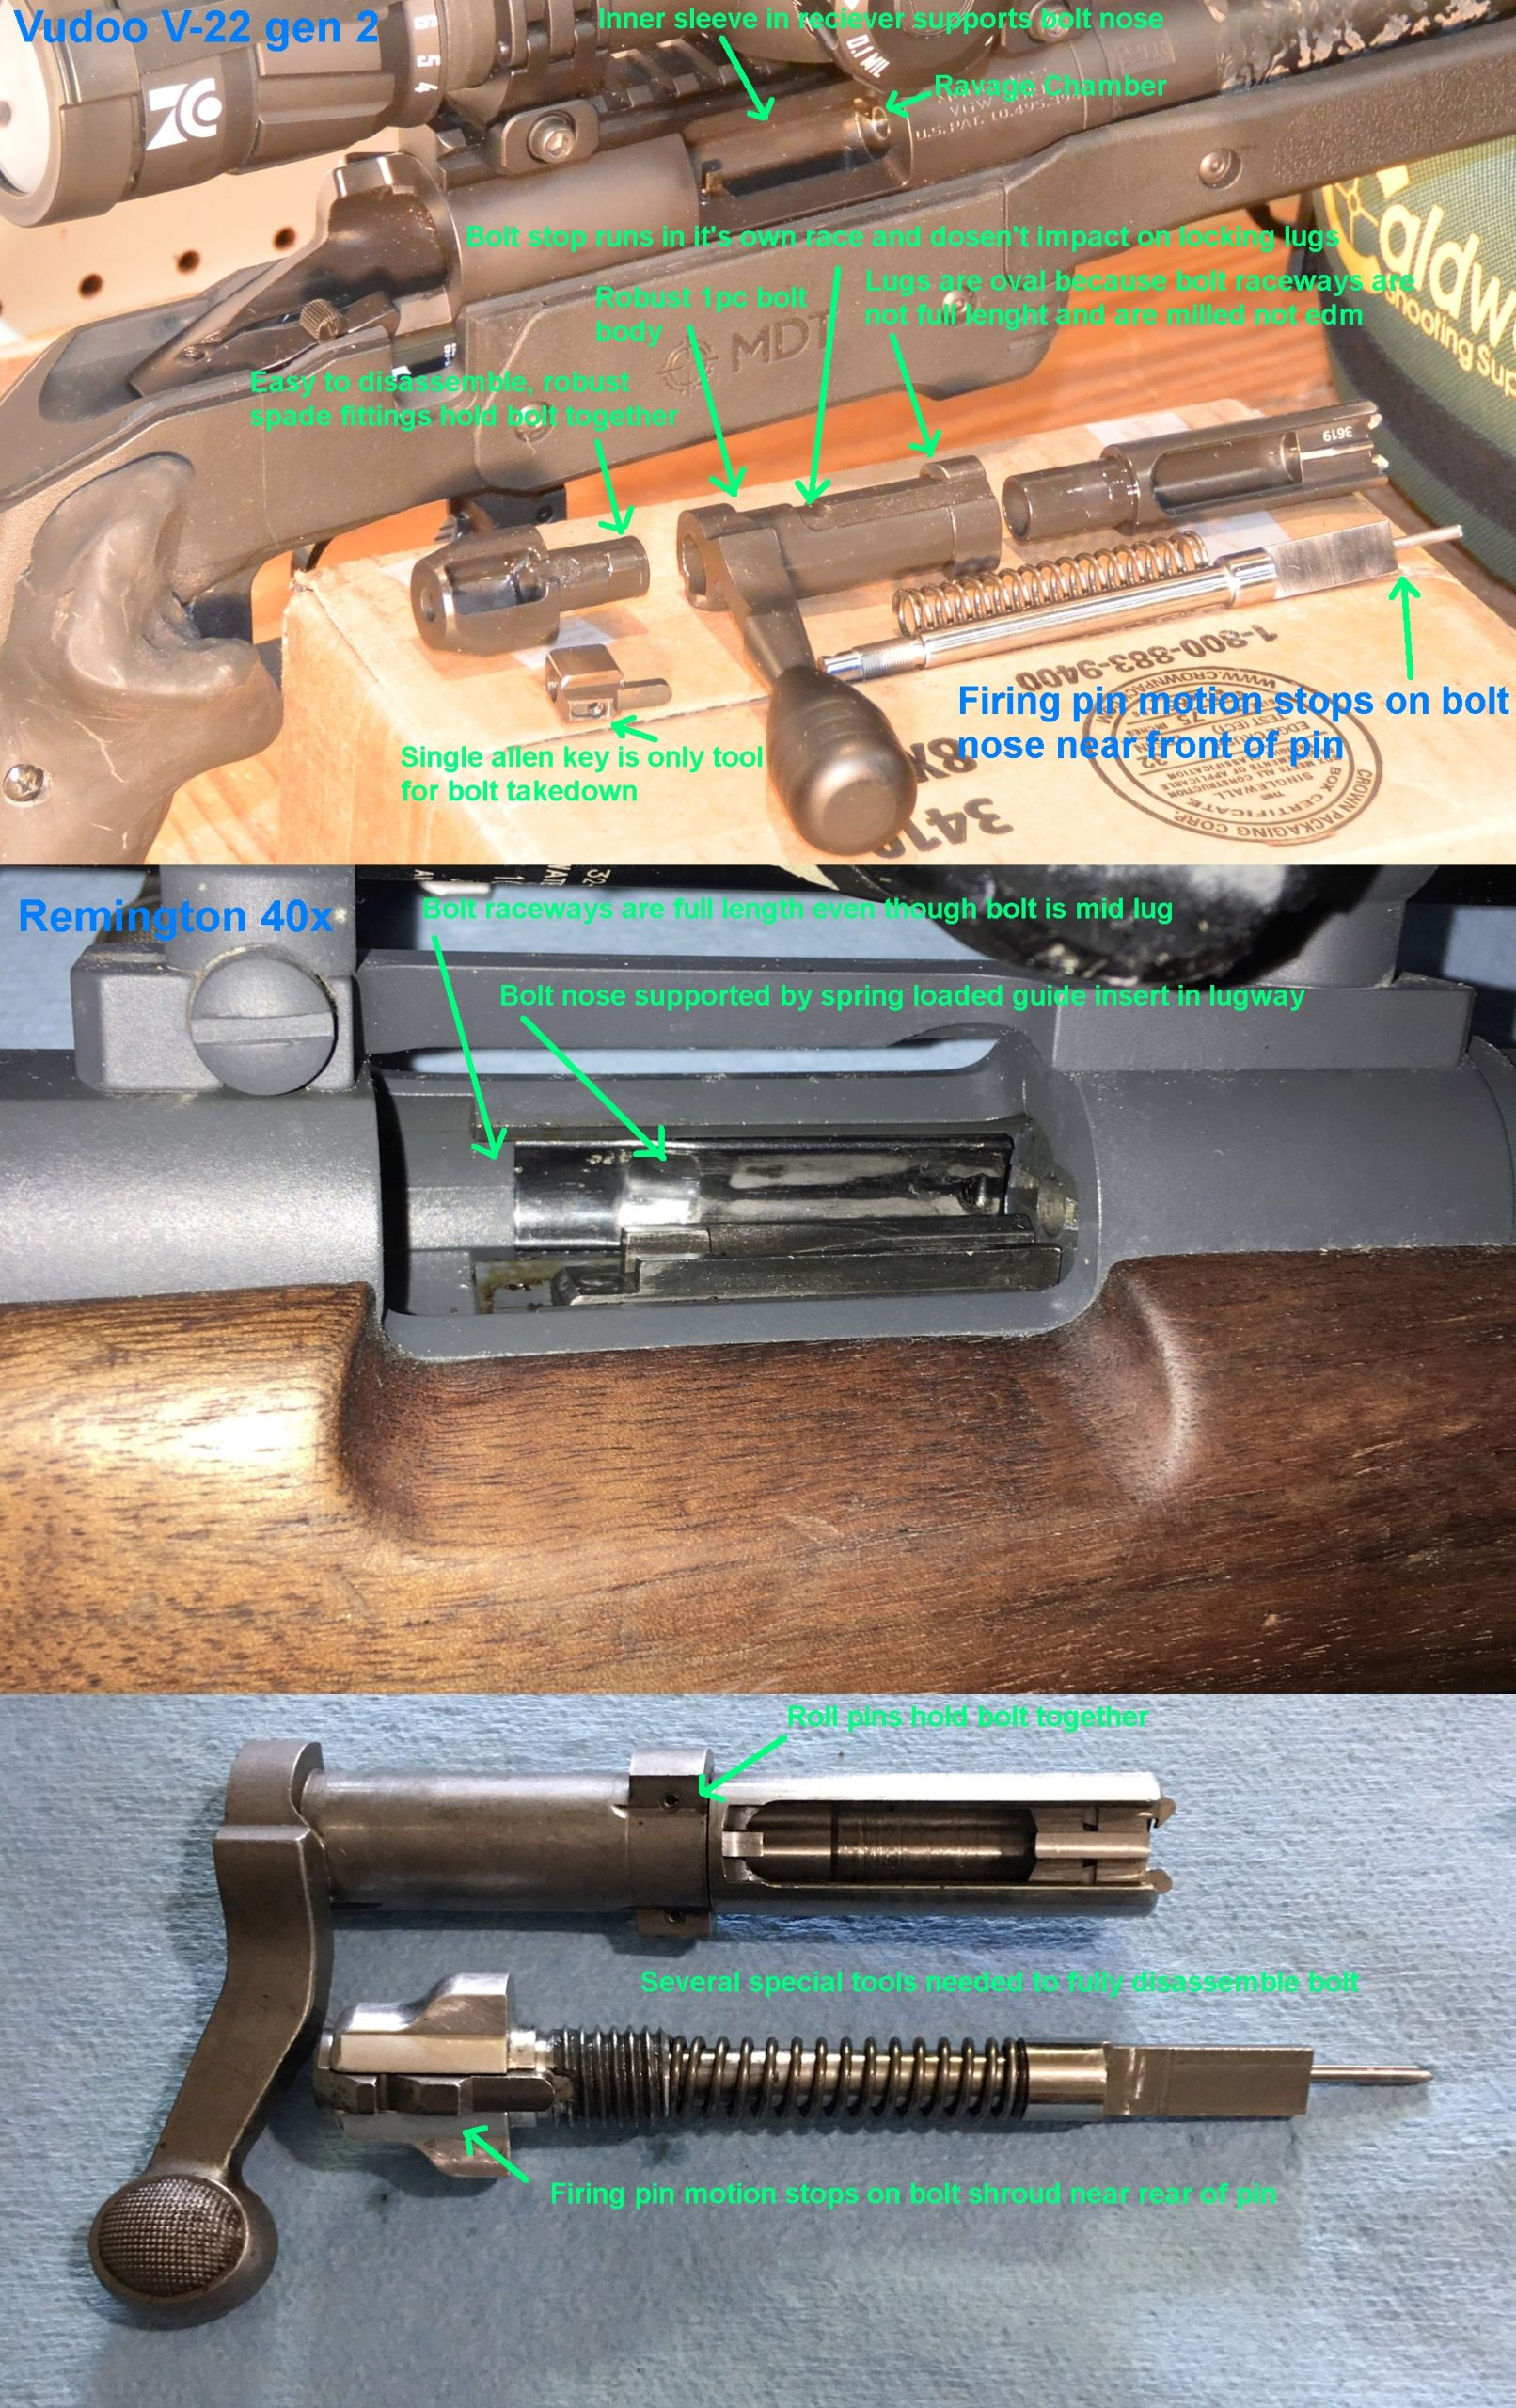 Image illustrating the key engineering differences between a Vudoo V-22 and a Remington 40x action.